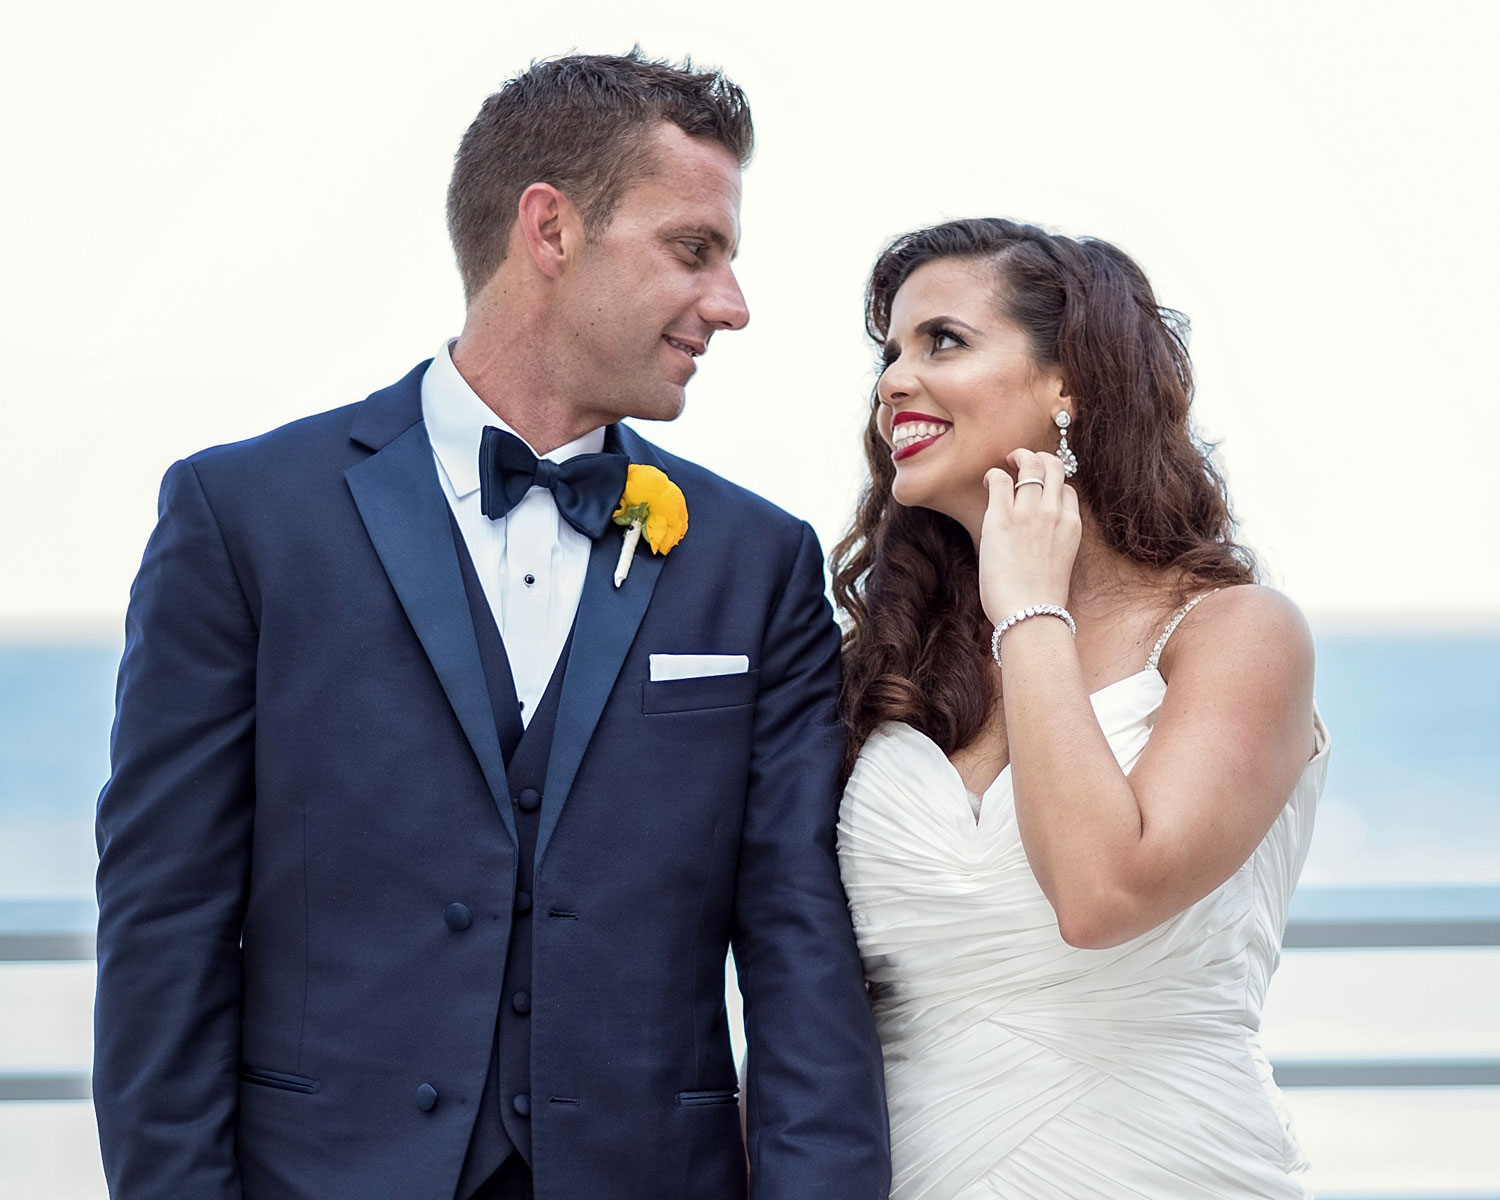 Sonia Nick Married at first sight